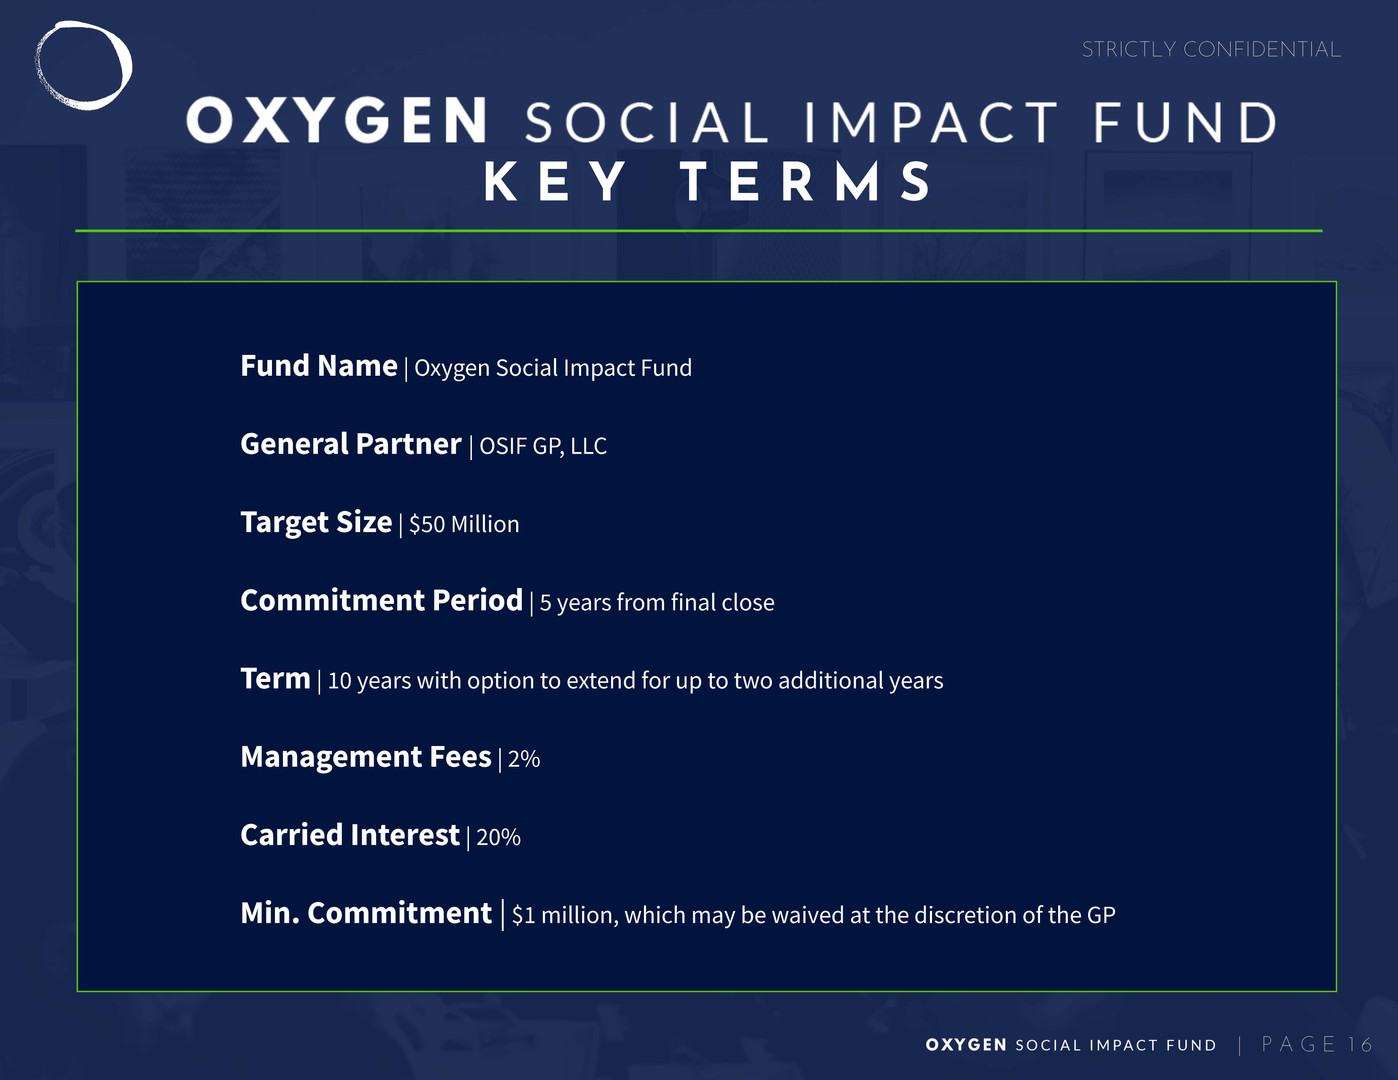 NEW_The Oxygen Fund2_Page_17.jpg